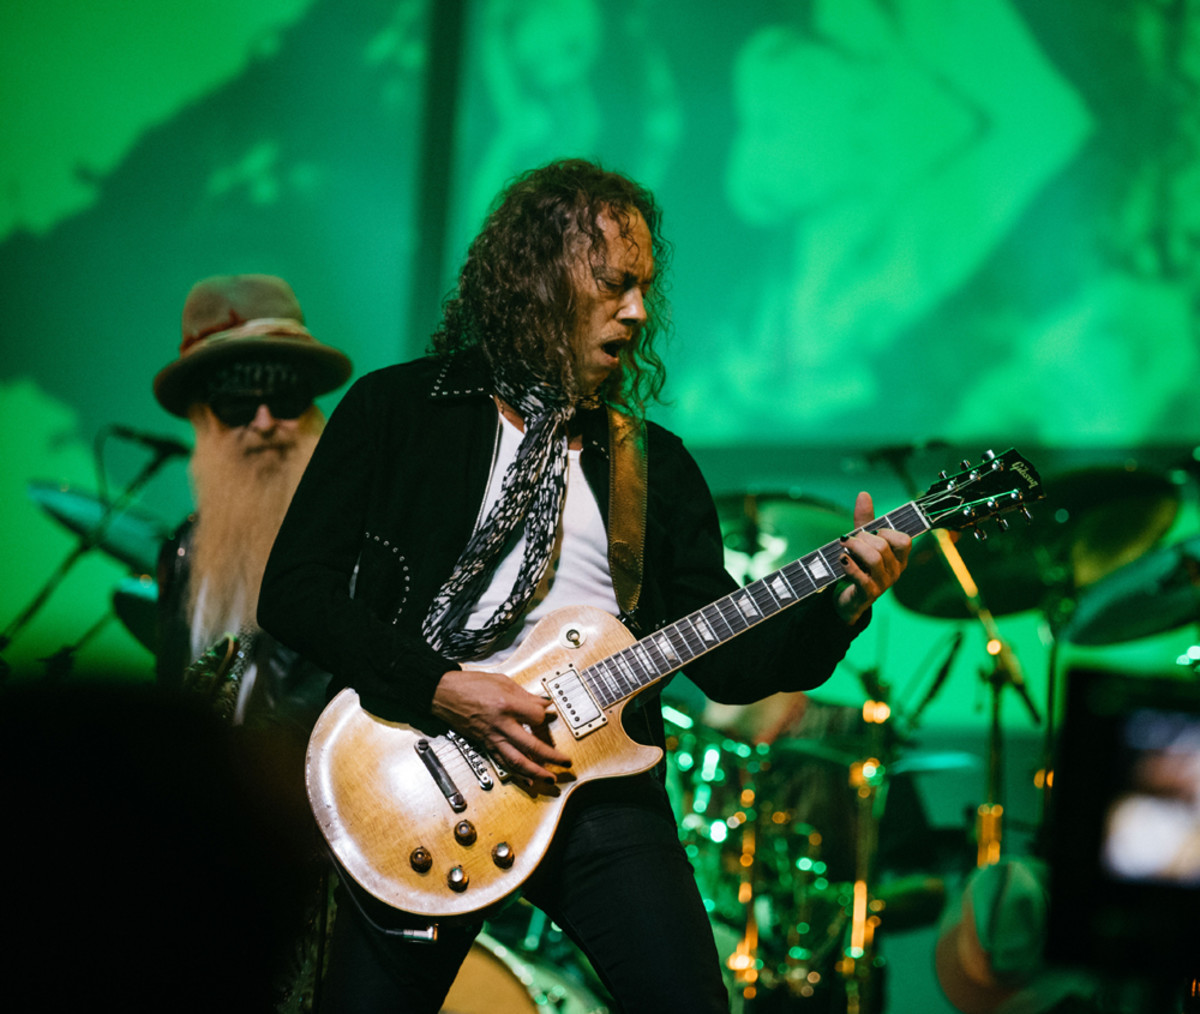 Kirk Hammett onstage during the Peter Green tribute. Photo by Ross Halfin.